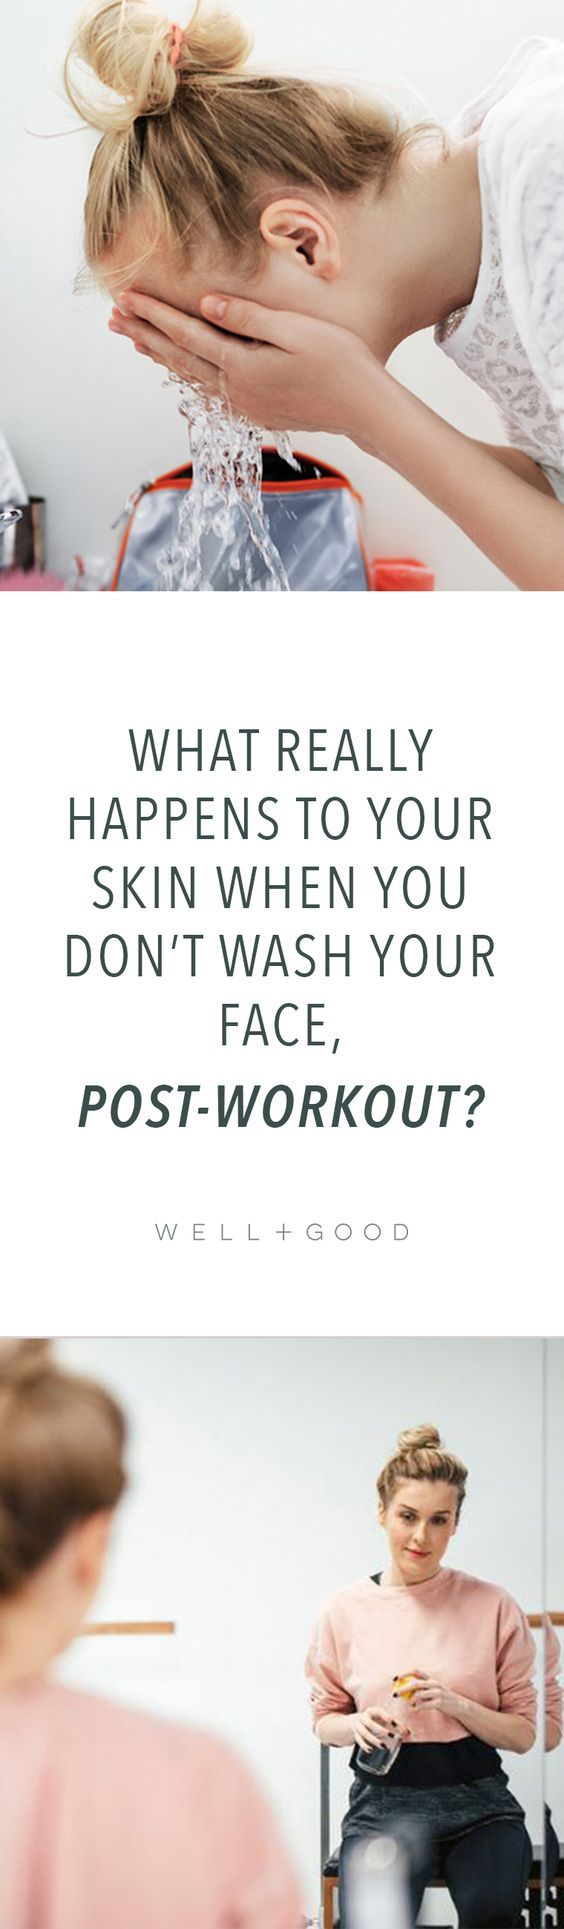 What happens when you don't wash your face after a workout